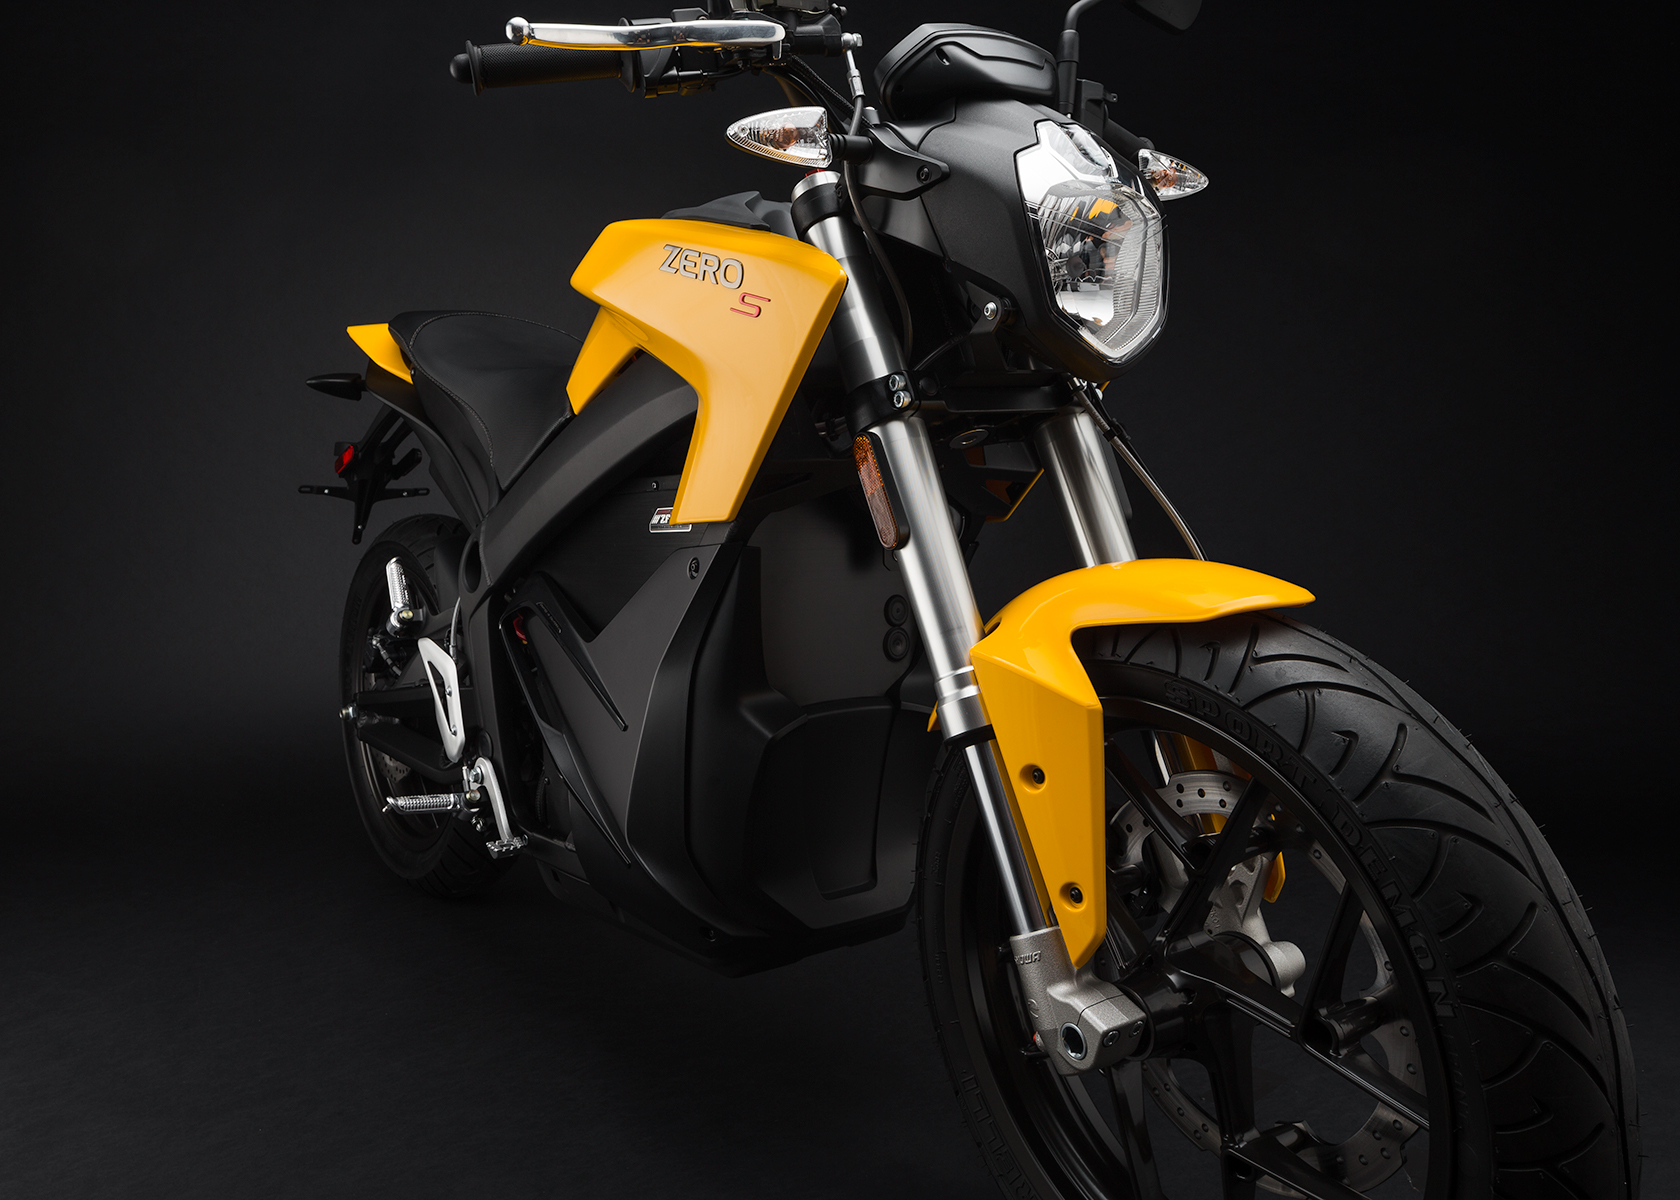 2015 Zero S Electric Motorcycle: Front Fork